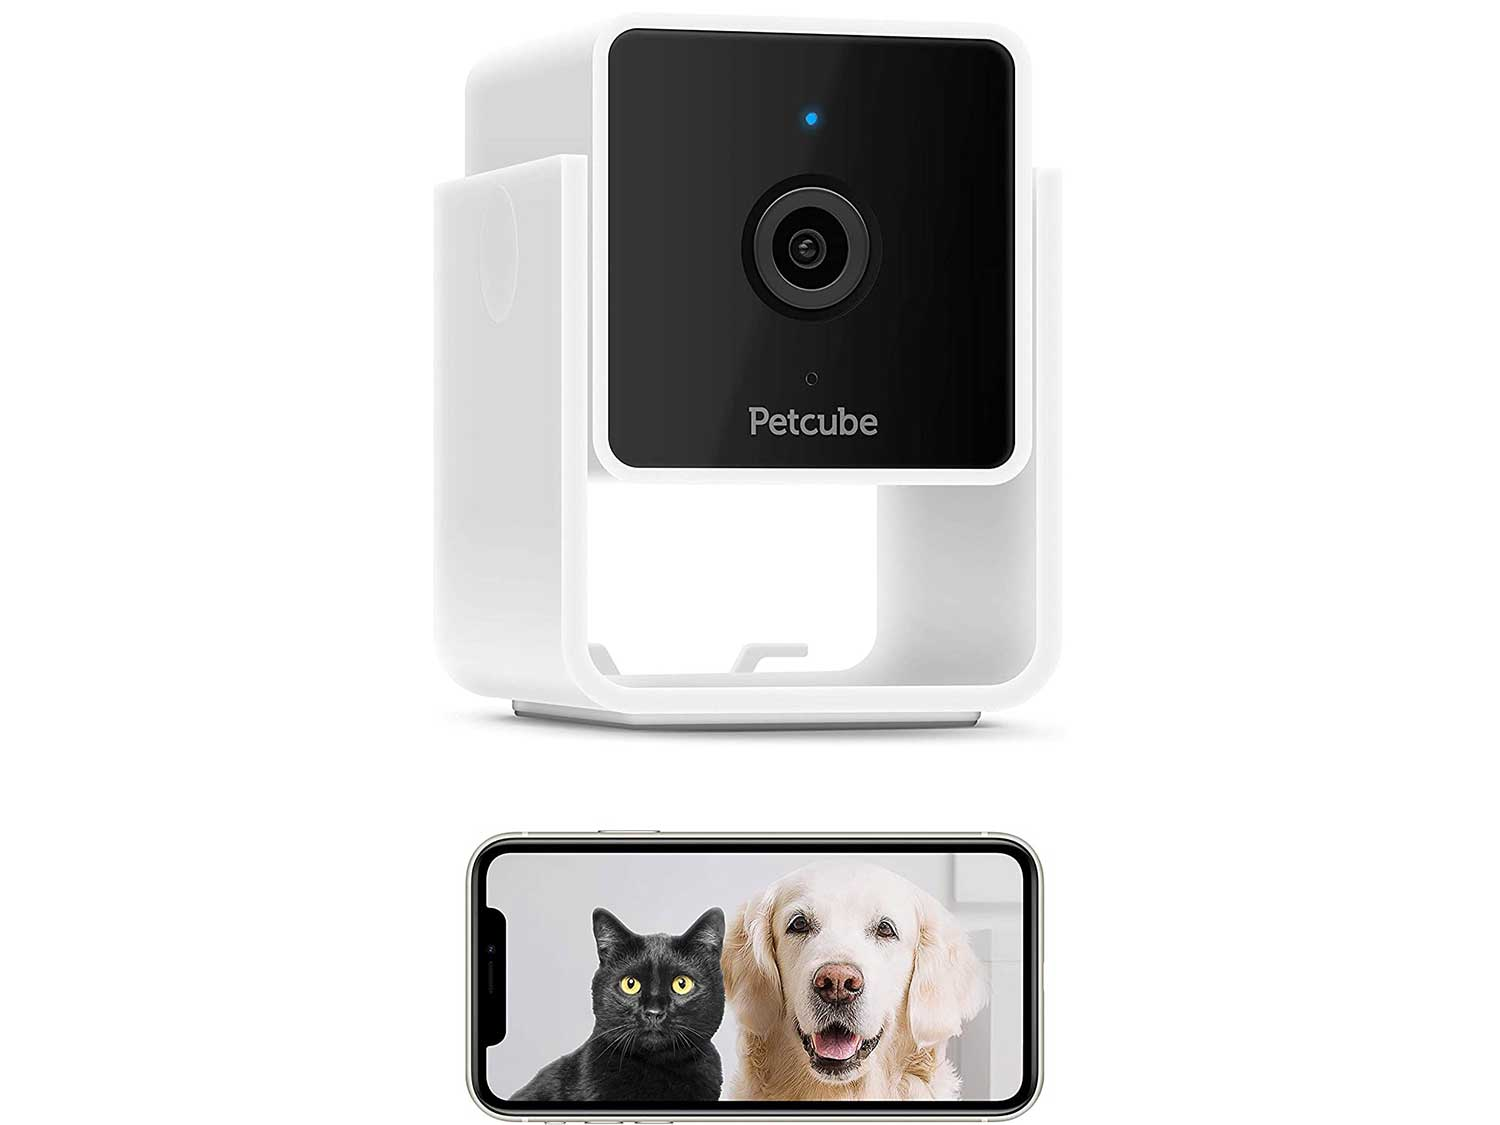 [New 2020] Pet Camera, Security Camera, Petcube Cam with Built-in Vet Chat for Cats & Dogs, 1080p HD Video, Night Vision, Two-Way Audio, Magnet Mounting for Entire Home Monitoring